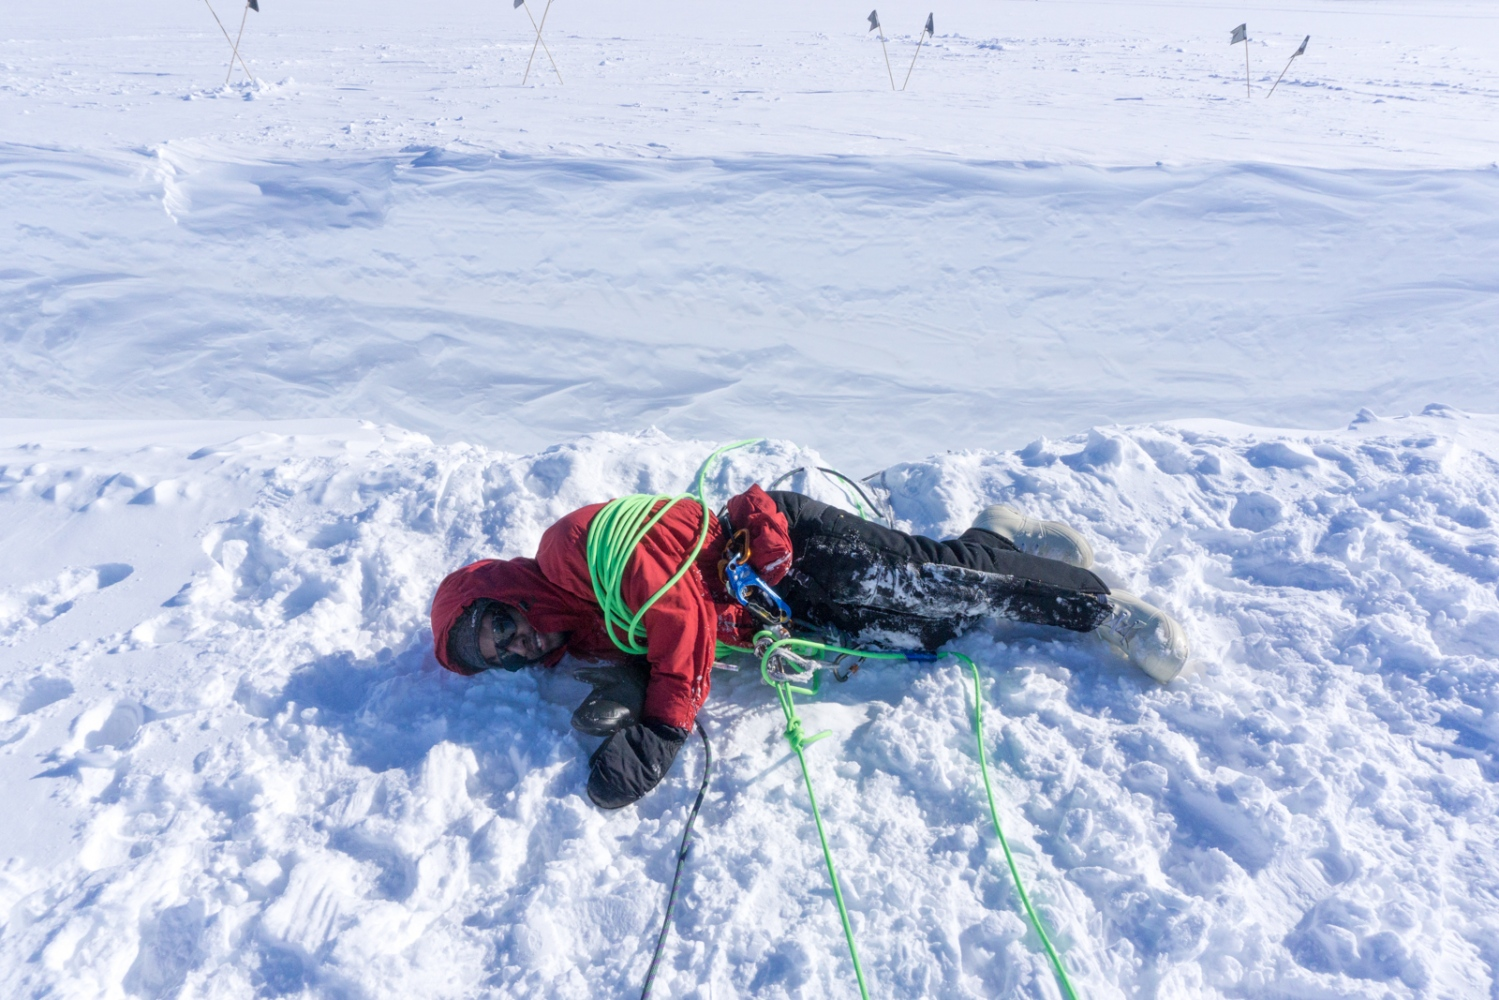 Practicing crevasse rescue on the Ross Ice Shelf Dr. Brian Atkinson gets saved by his teammates. 26 November 2017.